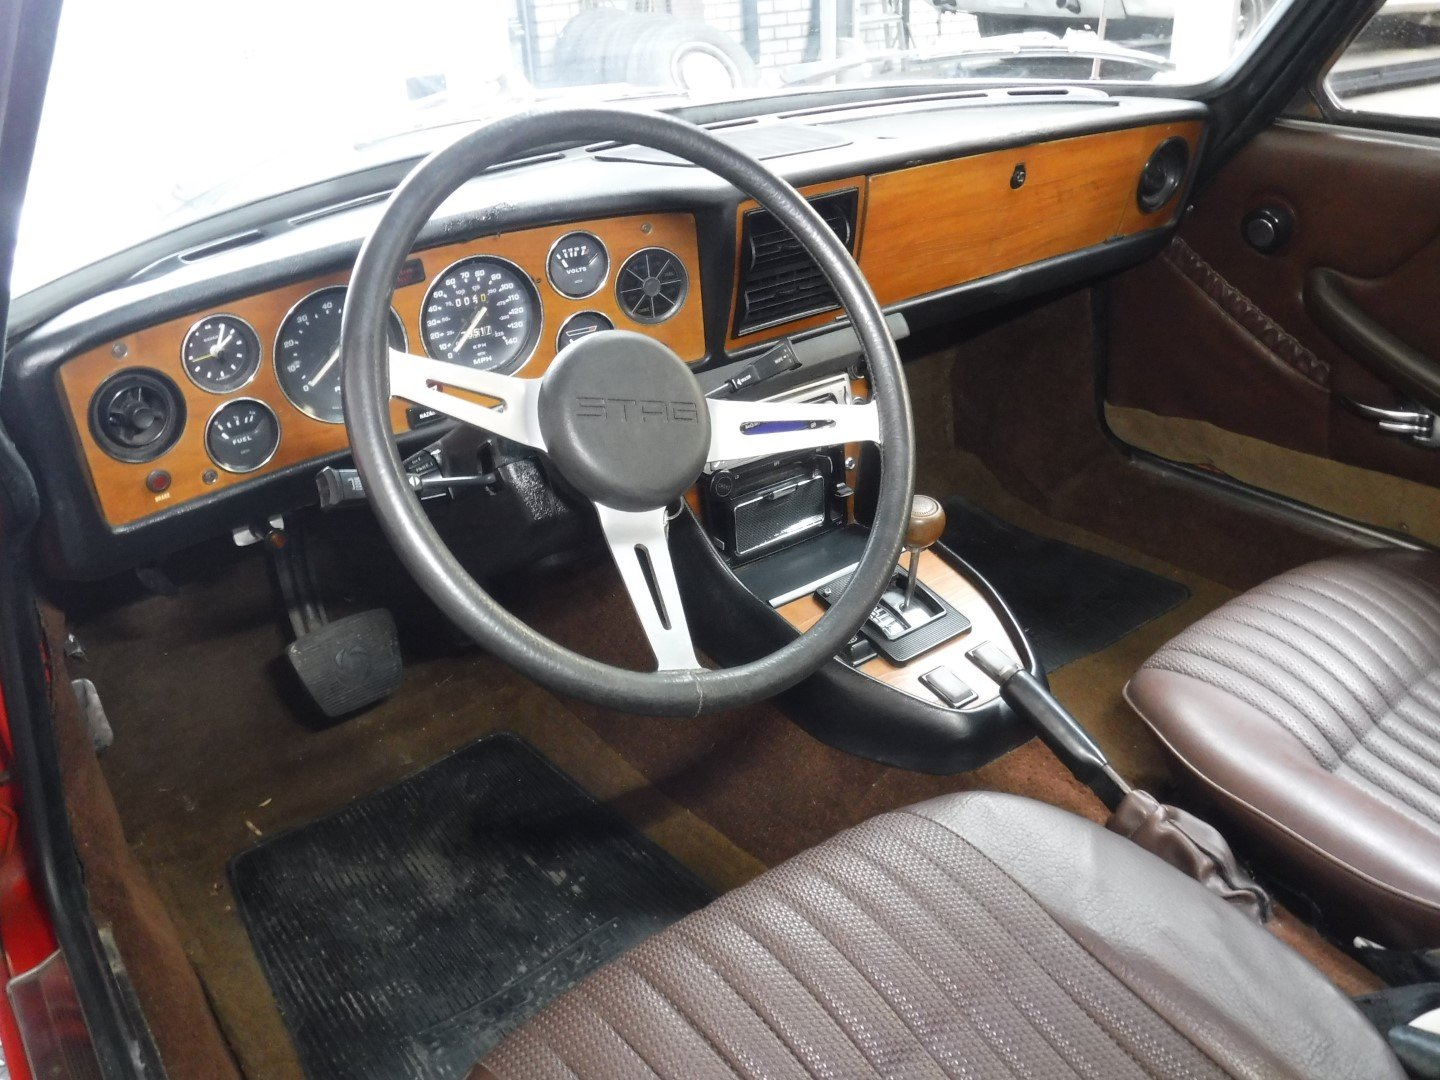 Triumh Stag V8 1973 For Sale (picture 3 of 6)